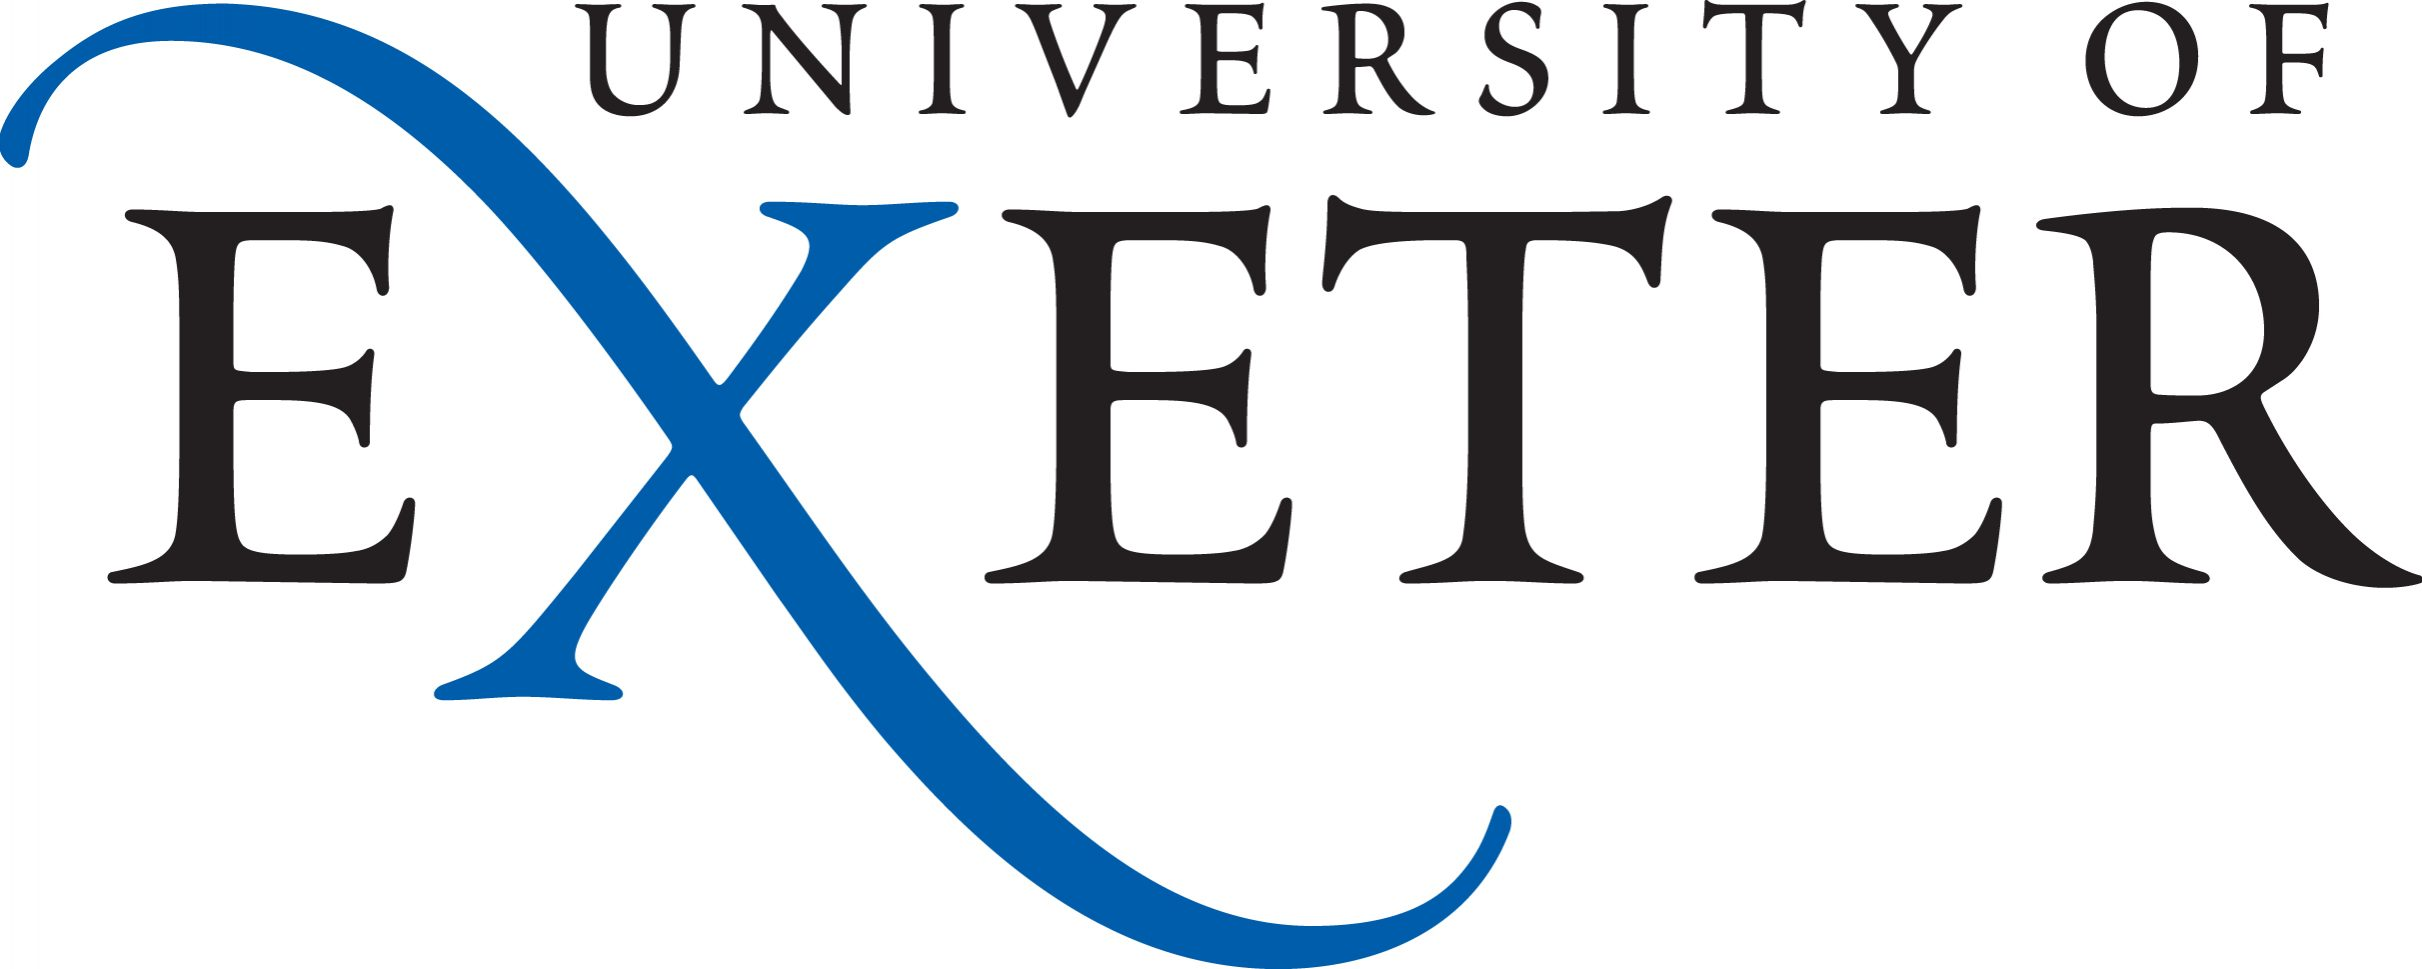 Teaching Position at the University of Exeter